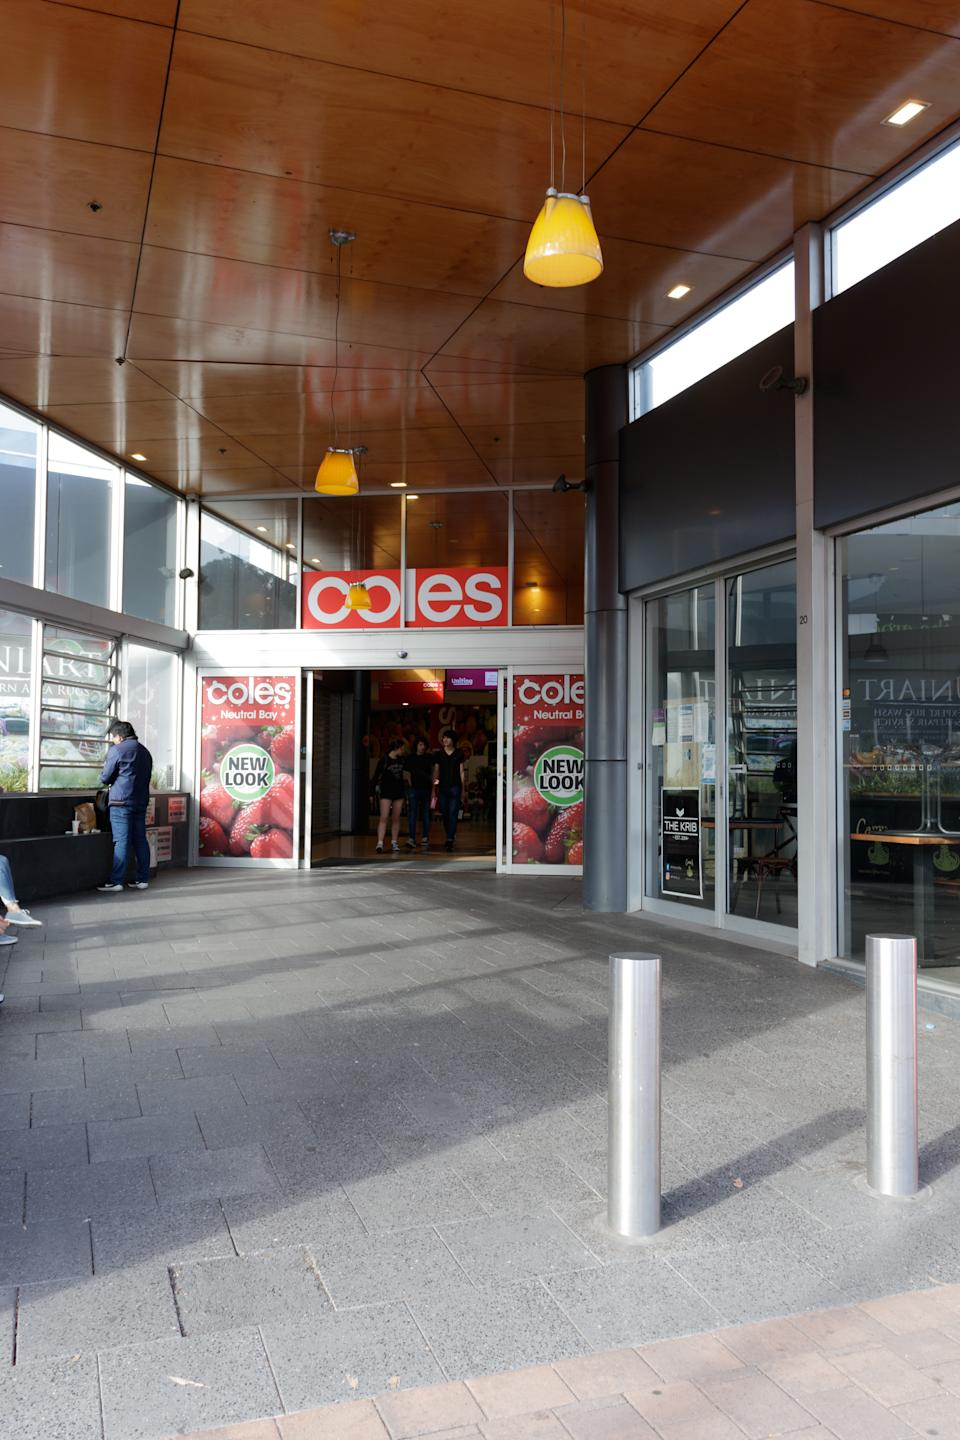 Coles supermarket in Neutral Bay, Sydney's lower north shore. Source: Getty Images